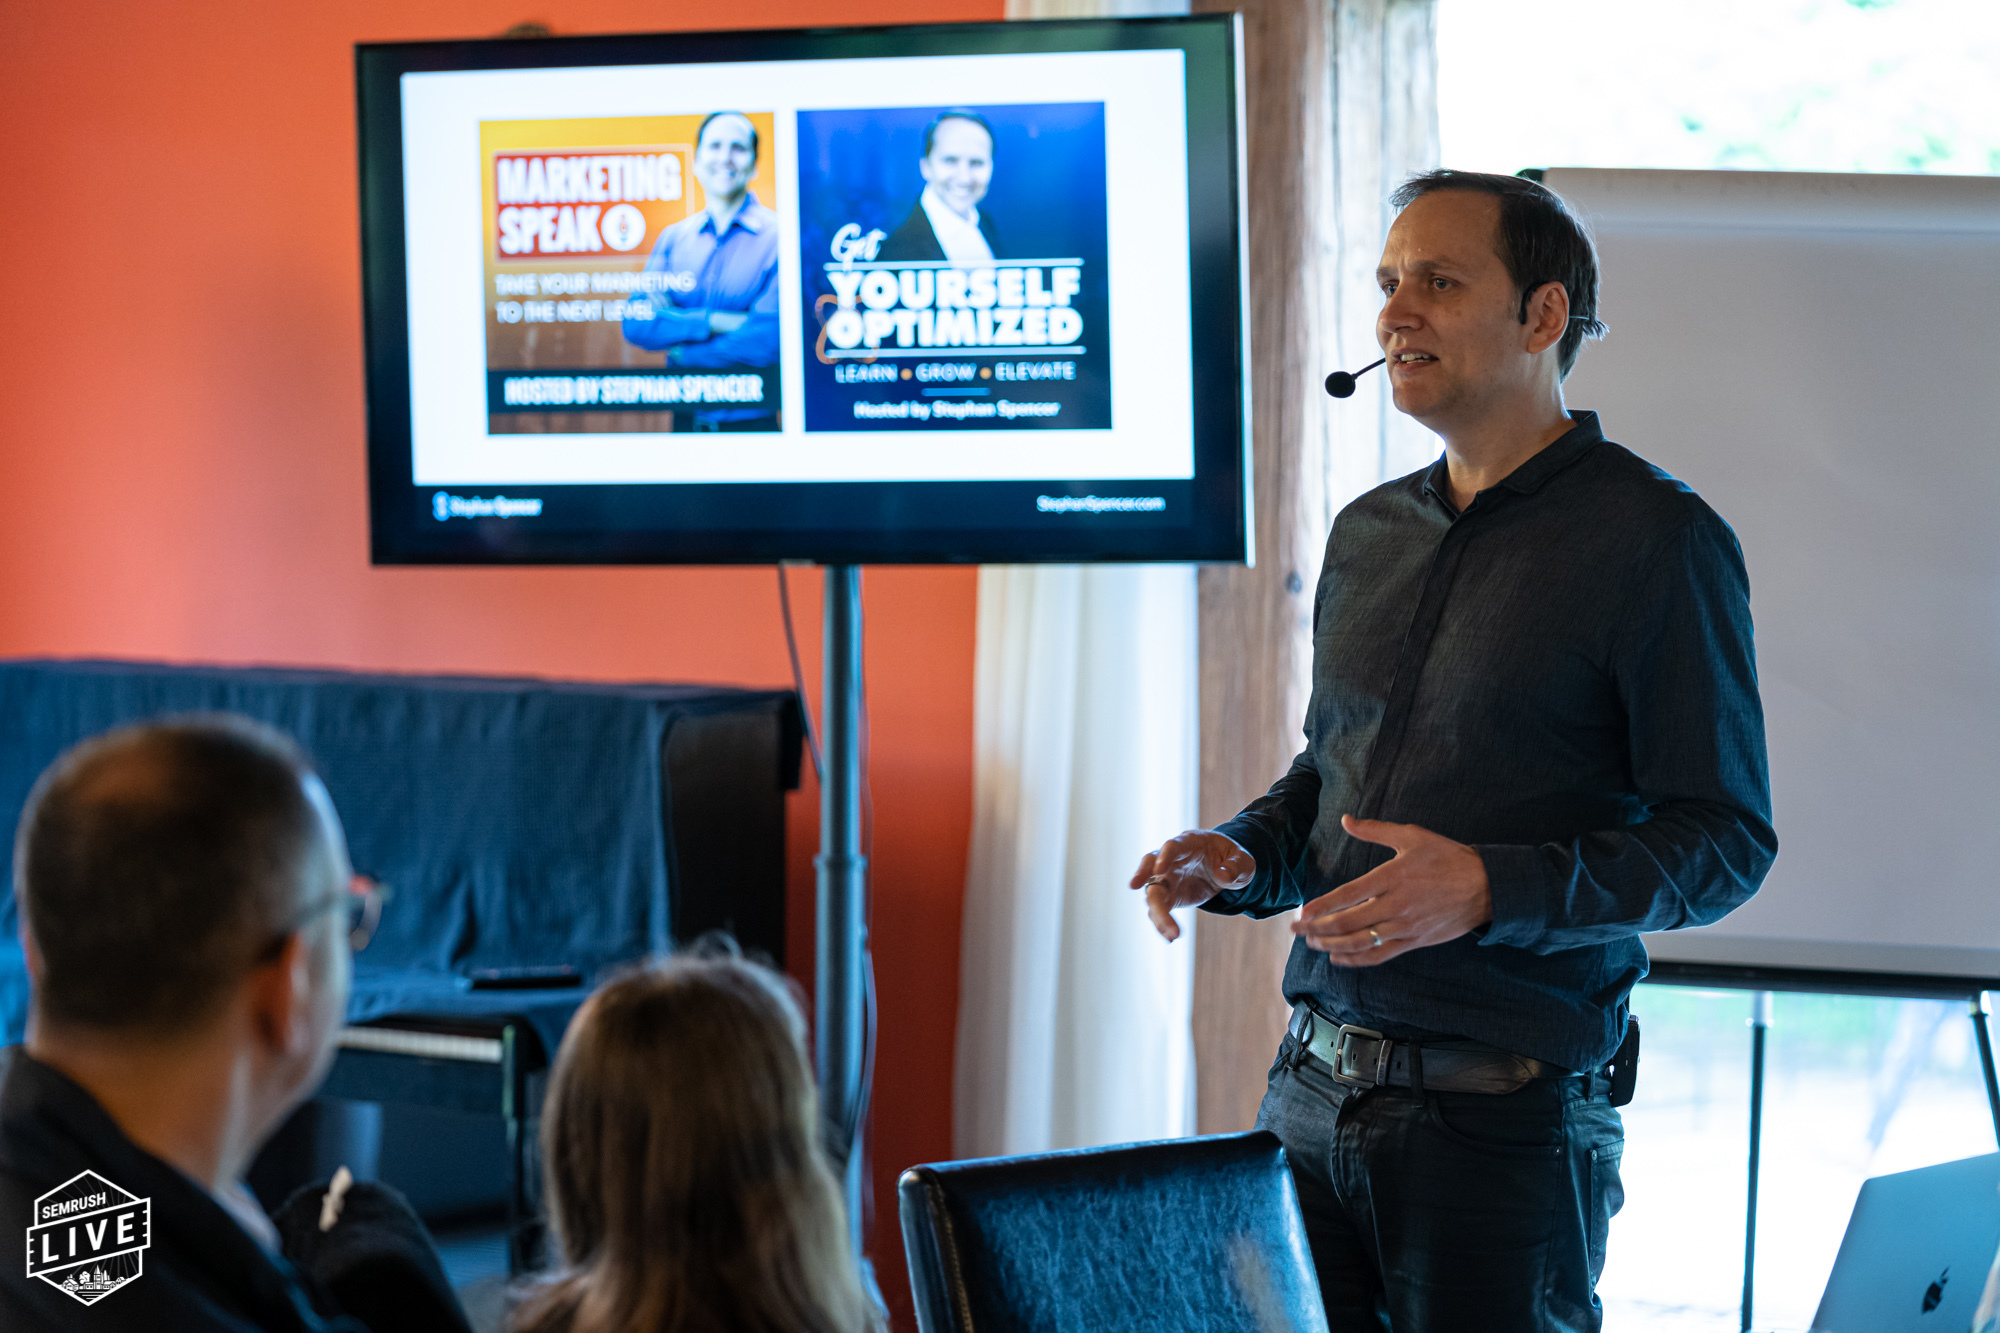 Insights and Educational Content – SEMrush Rolls Out First Global Conference 画像 4